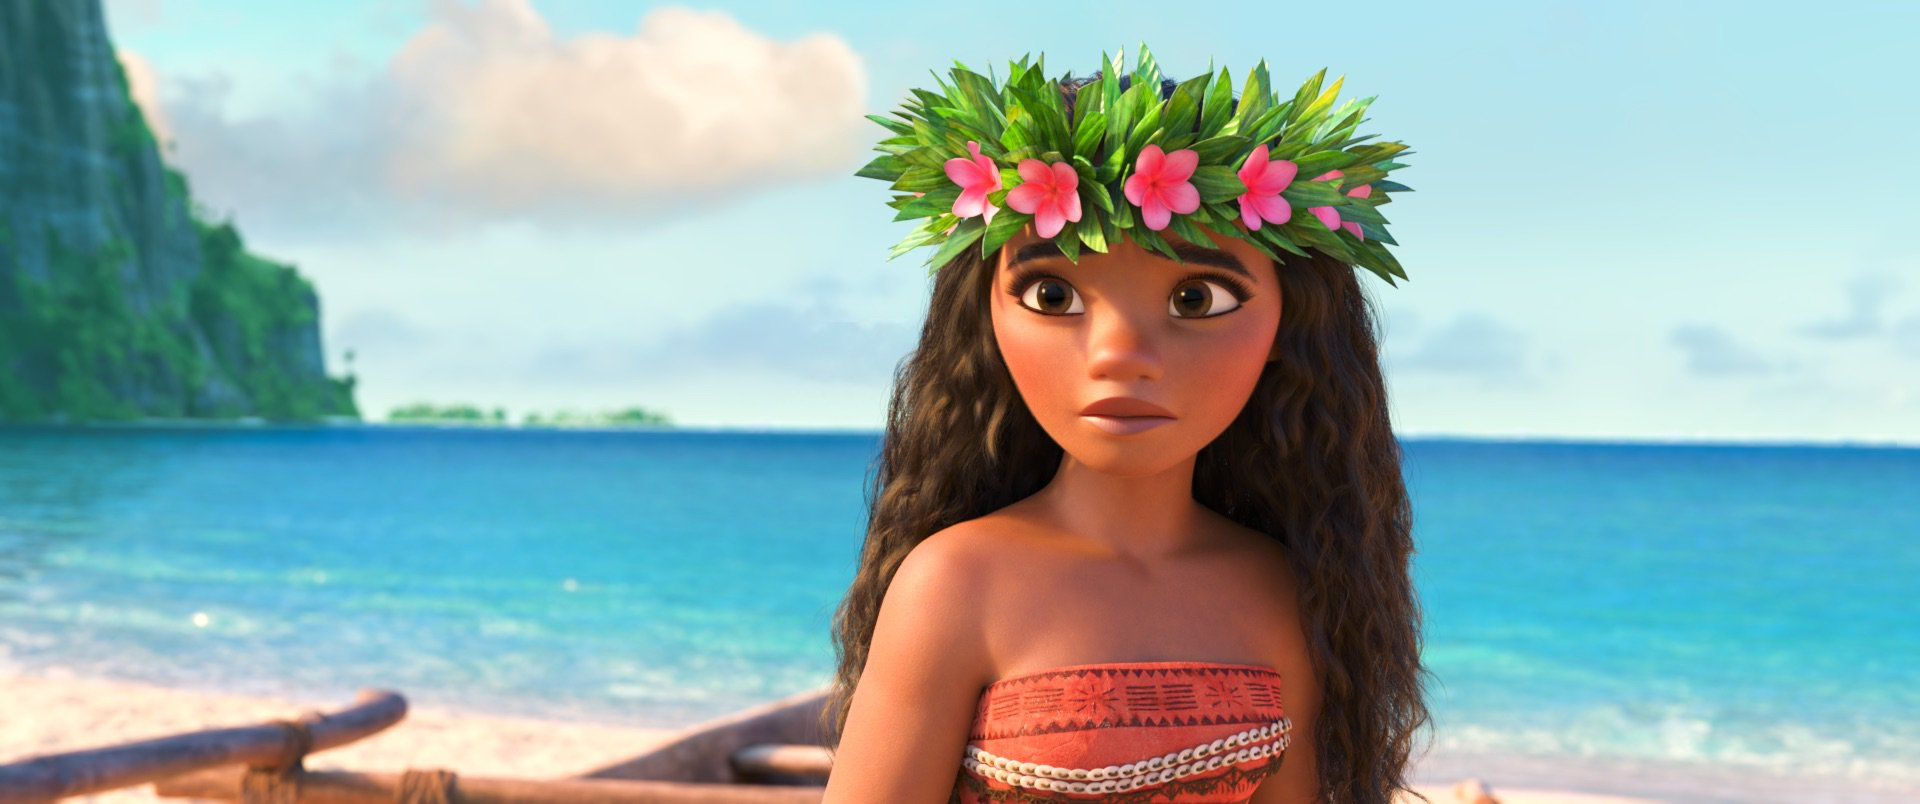 Editorial use only. No book cover usage. Mandatory Credit: Photo by Disney/Kobal/REX/Shutterstock (7675391f) Moana (voice of Auli'i Cravalho) 'MOANA' Film - 2016 Directed by the filmmaking team of Ron Clements and John Musker, produced by Osnat Shurer, and featuring music by Lin-Manuel Miranda, Mark Mancina and Opetaia Foa'i